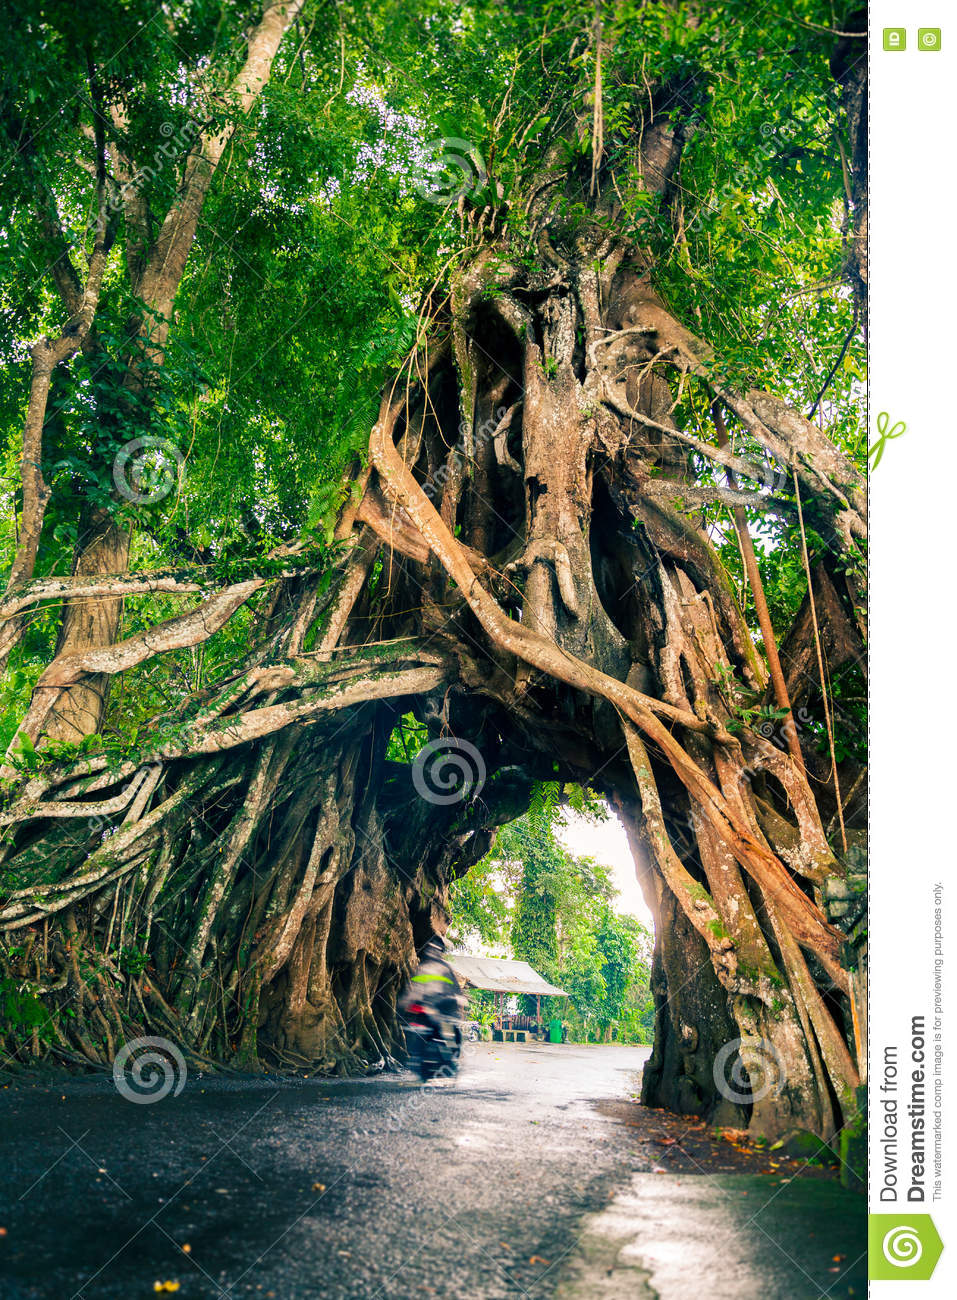 Bunut Bolong, Great huge tropical nature live green Ficus tree with tunnel arch of interwoven tree roots at the base for walking